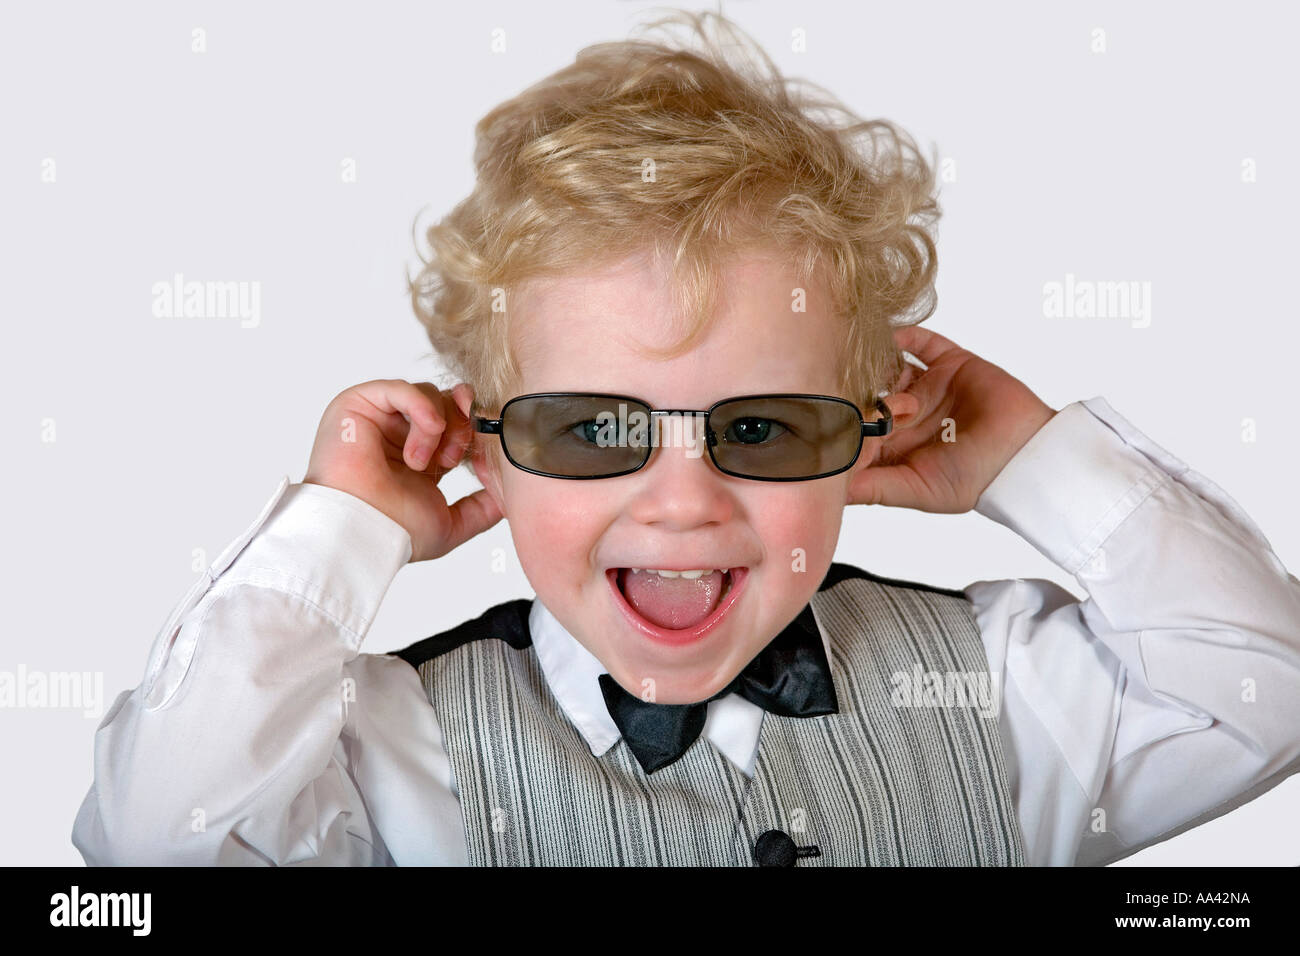 Little manager with sunglasses Stock Photo